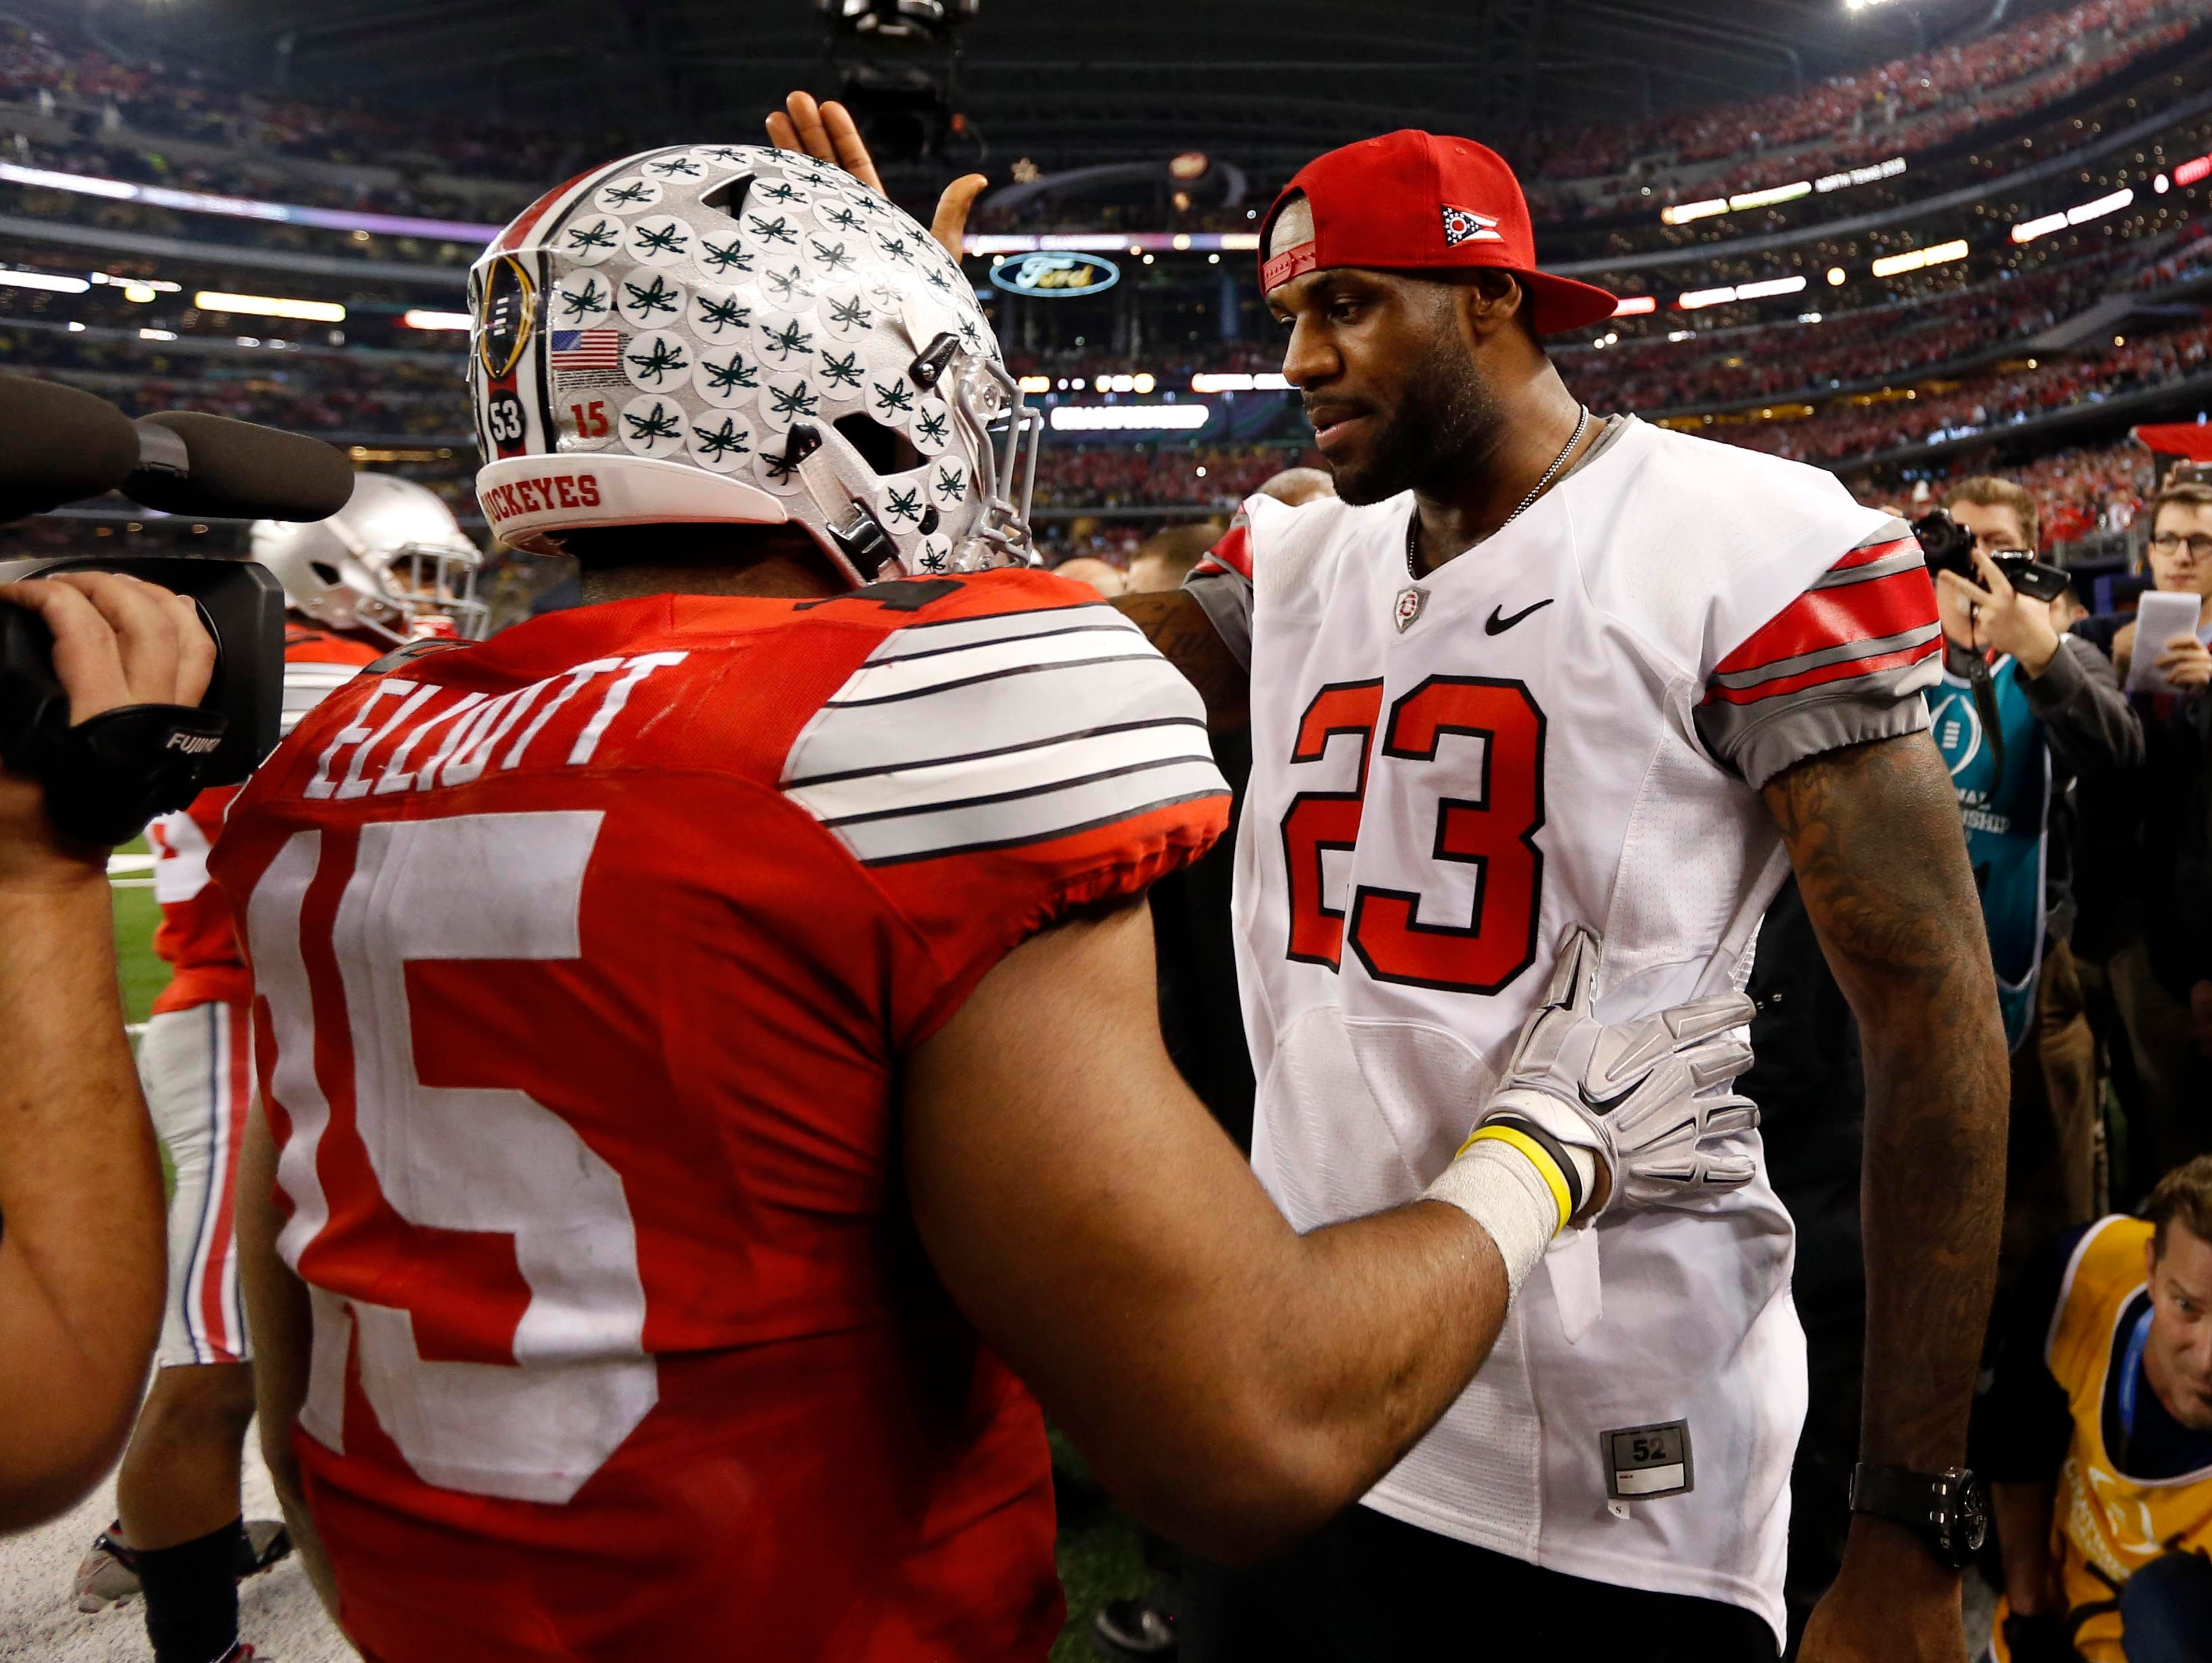 Ohio State Buckeyes running back Ezekiel Elliott (15) greets Cleveland  Cavaliers player LeBron James a4870d9d5